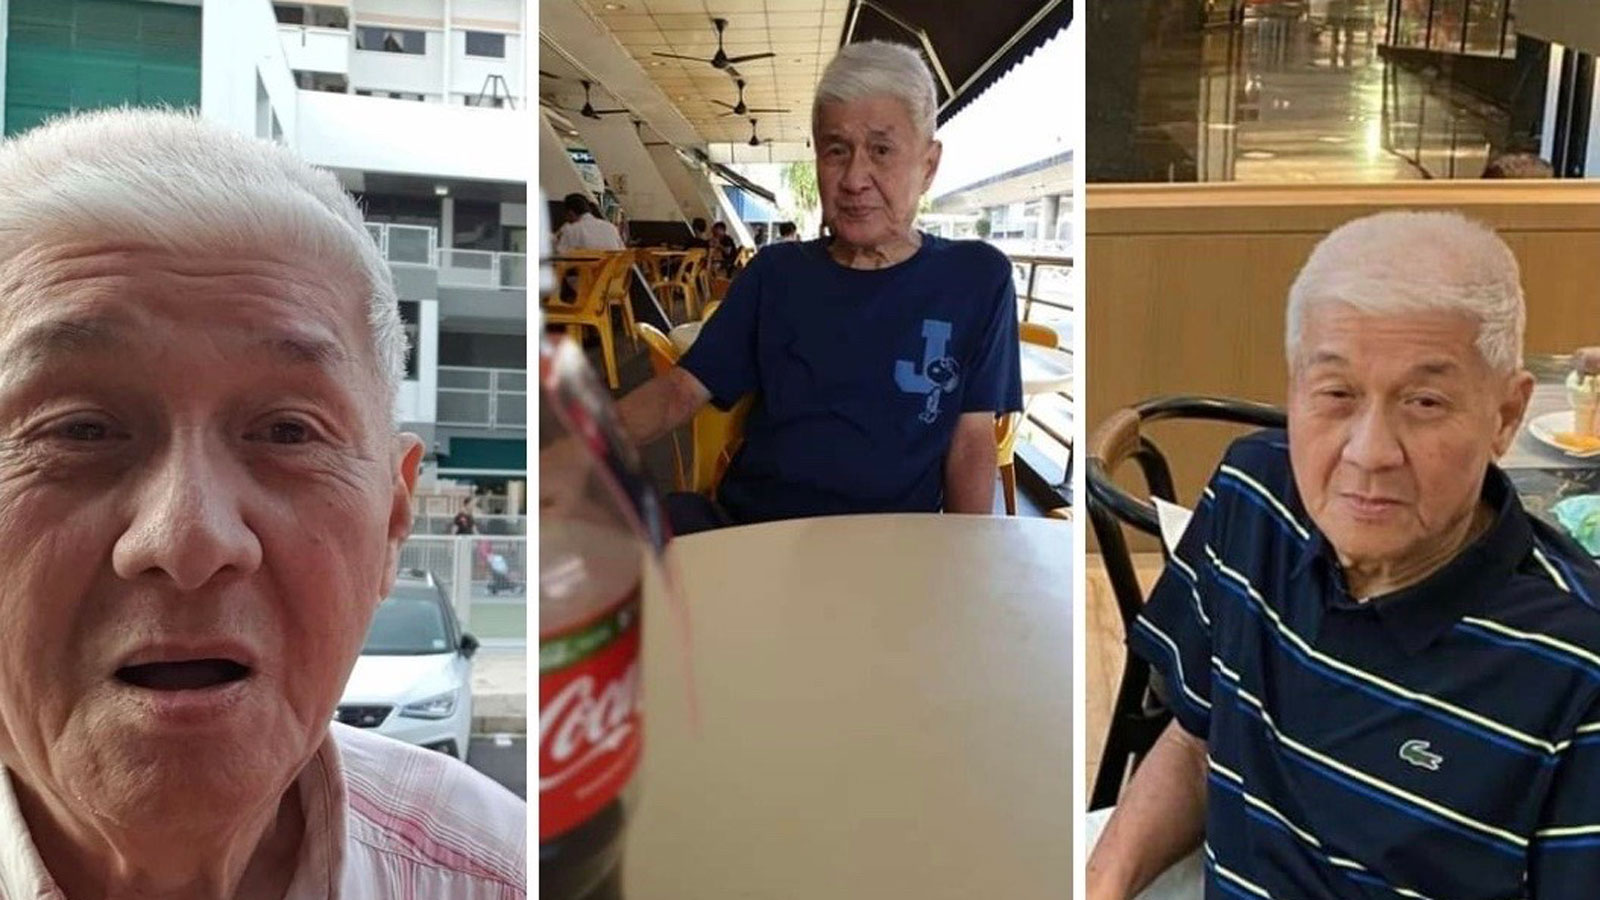 My dad with dementia went missing for four days, found at Hougang thanks to good Samaritan thumbnail